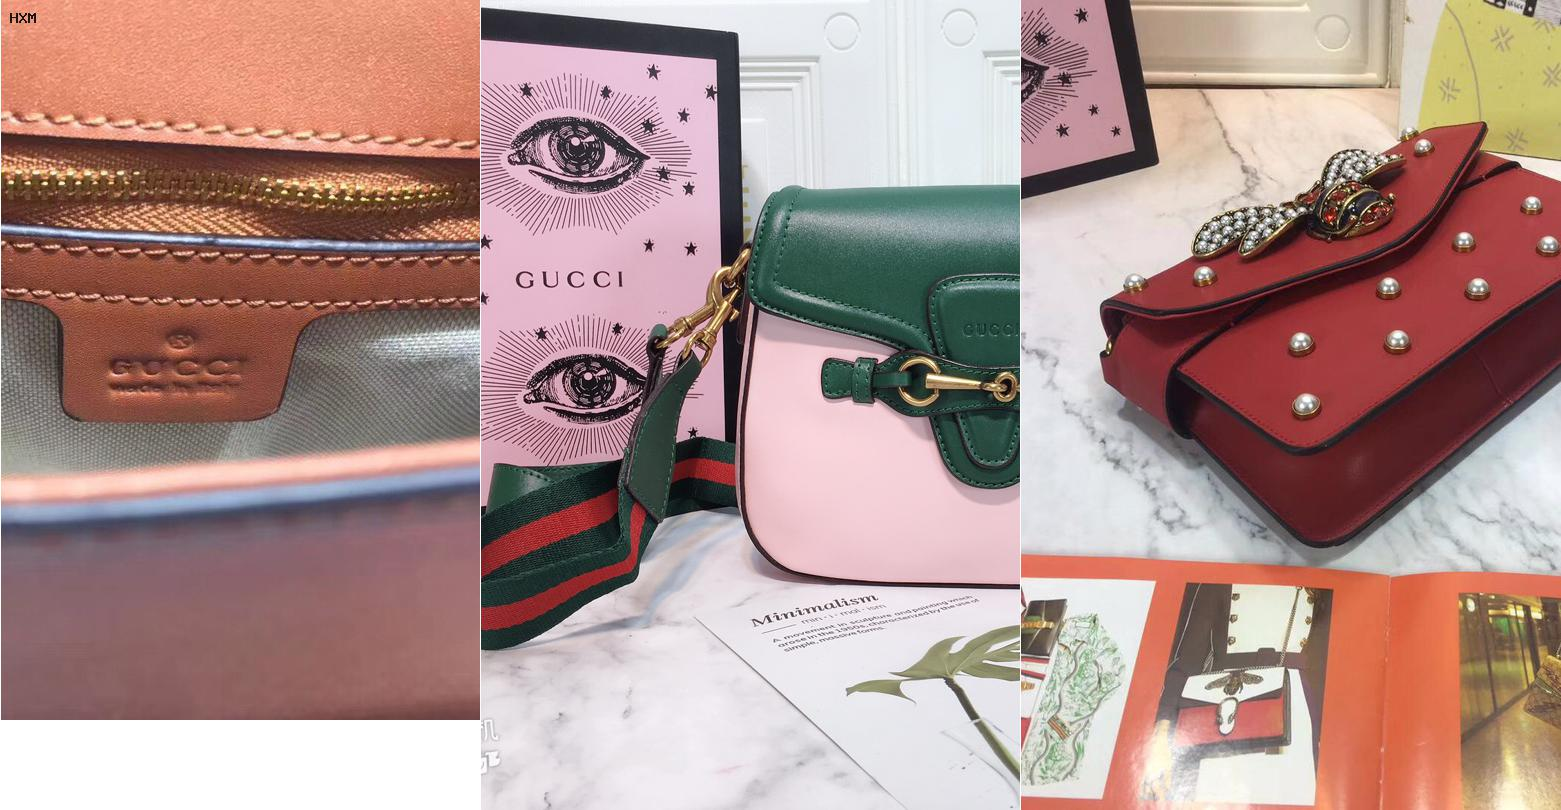 come distinguere una borsa gucci originale